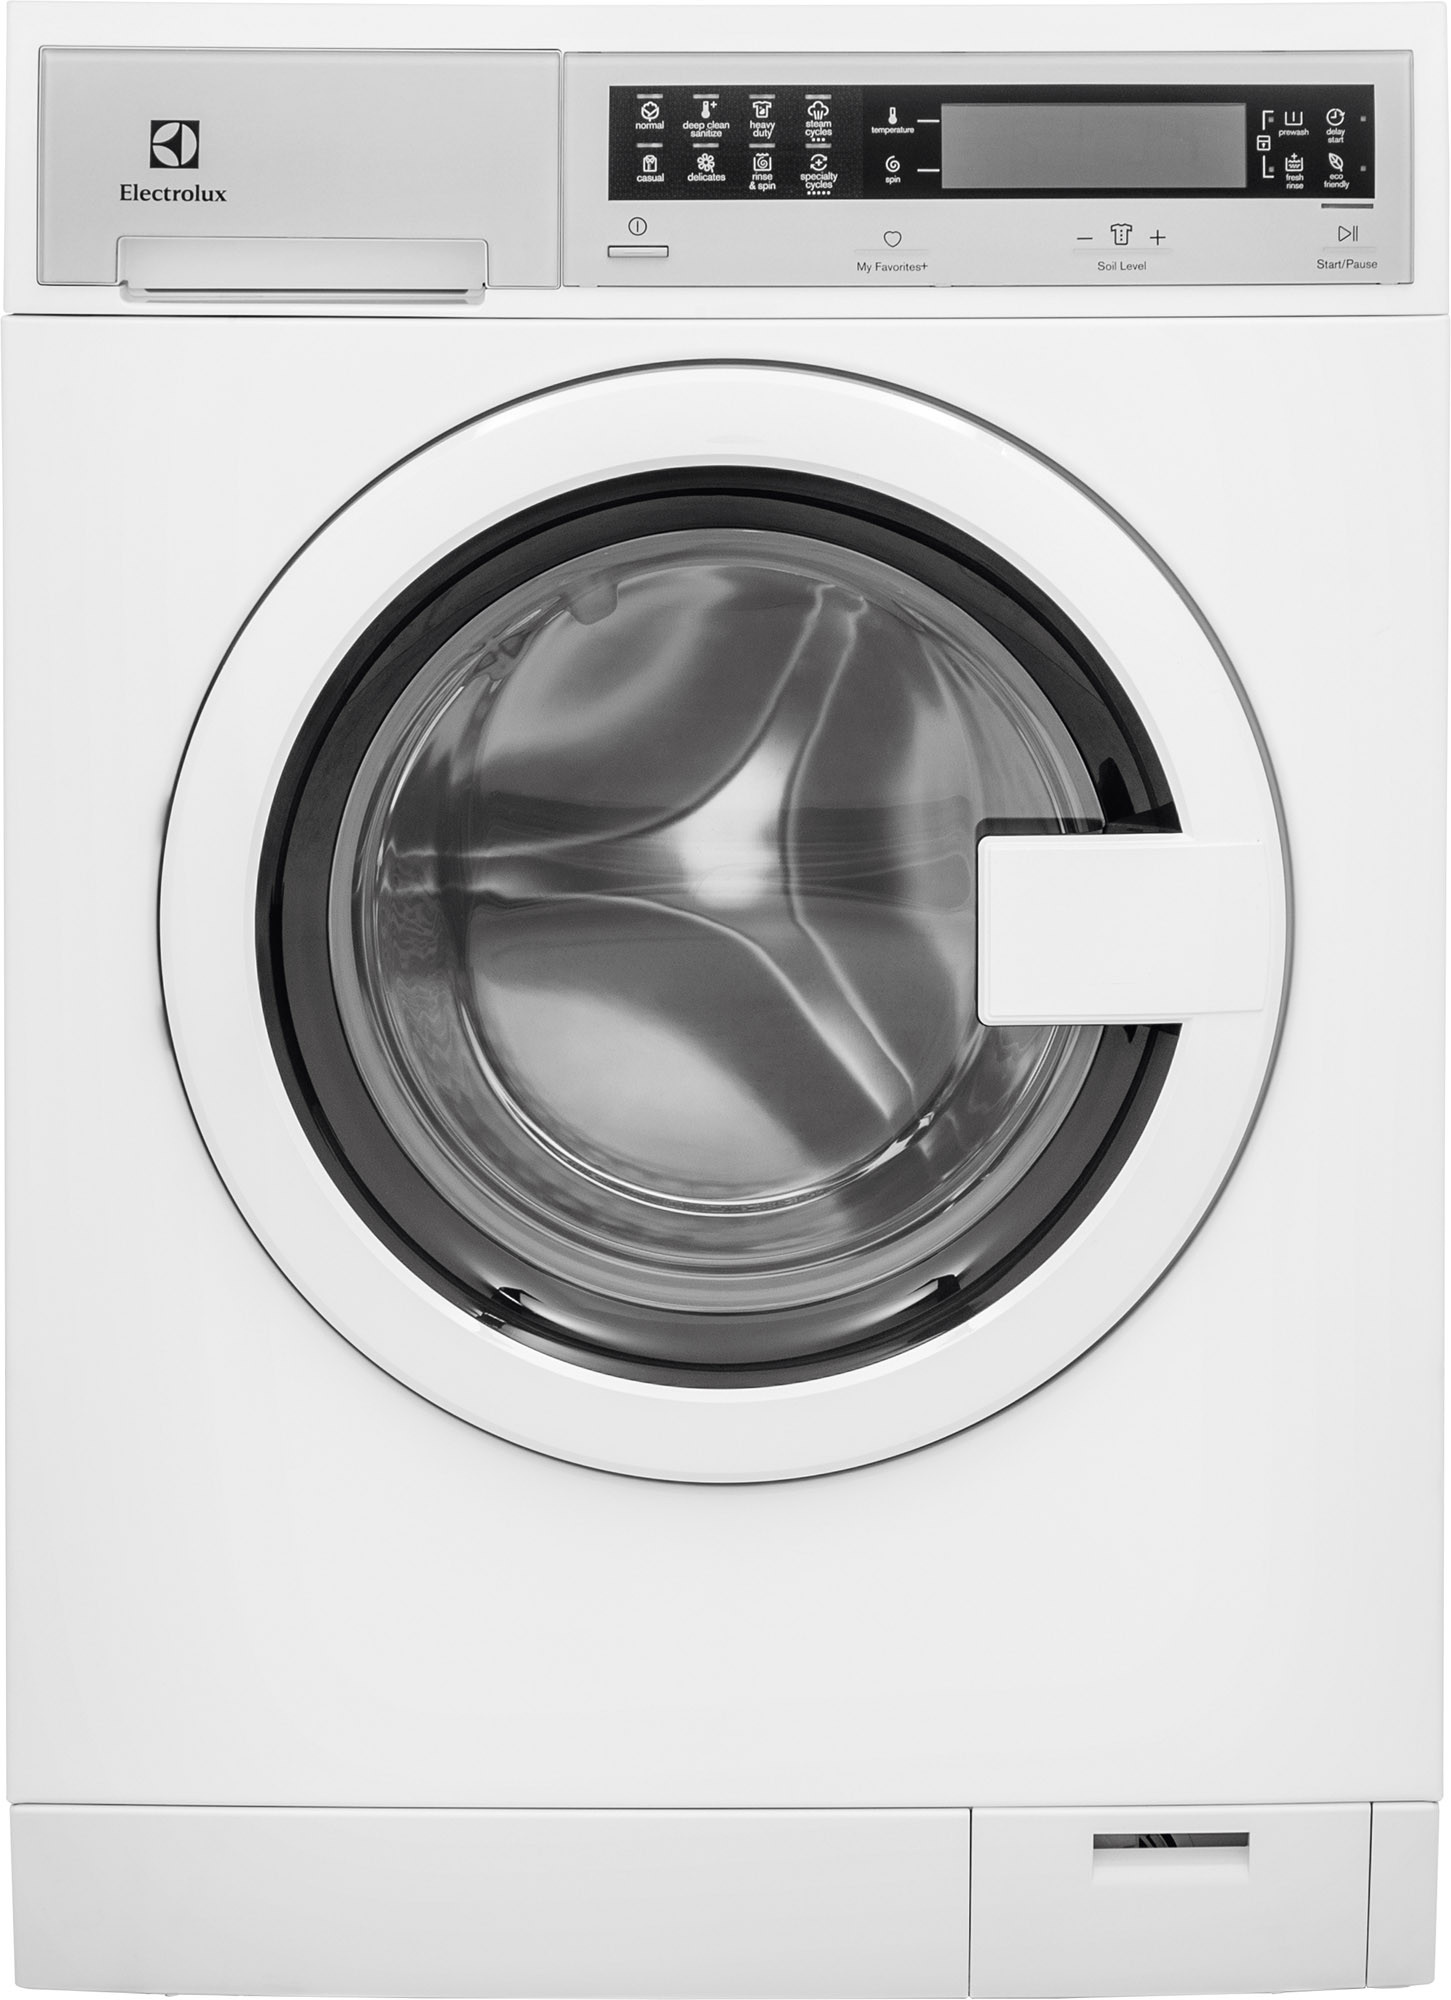 Miele stackable washer dryer ventless - Miele Stackable Washer Dryer Ventless 7